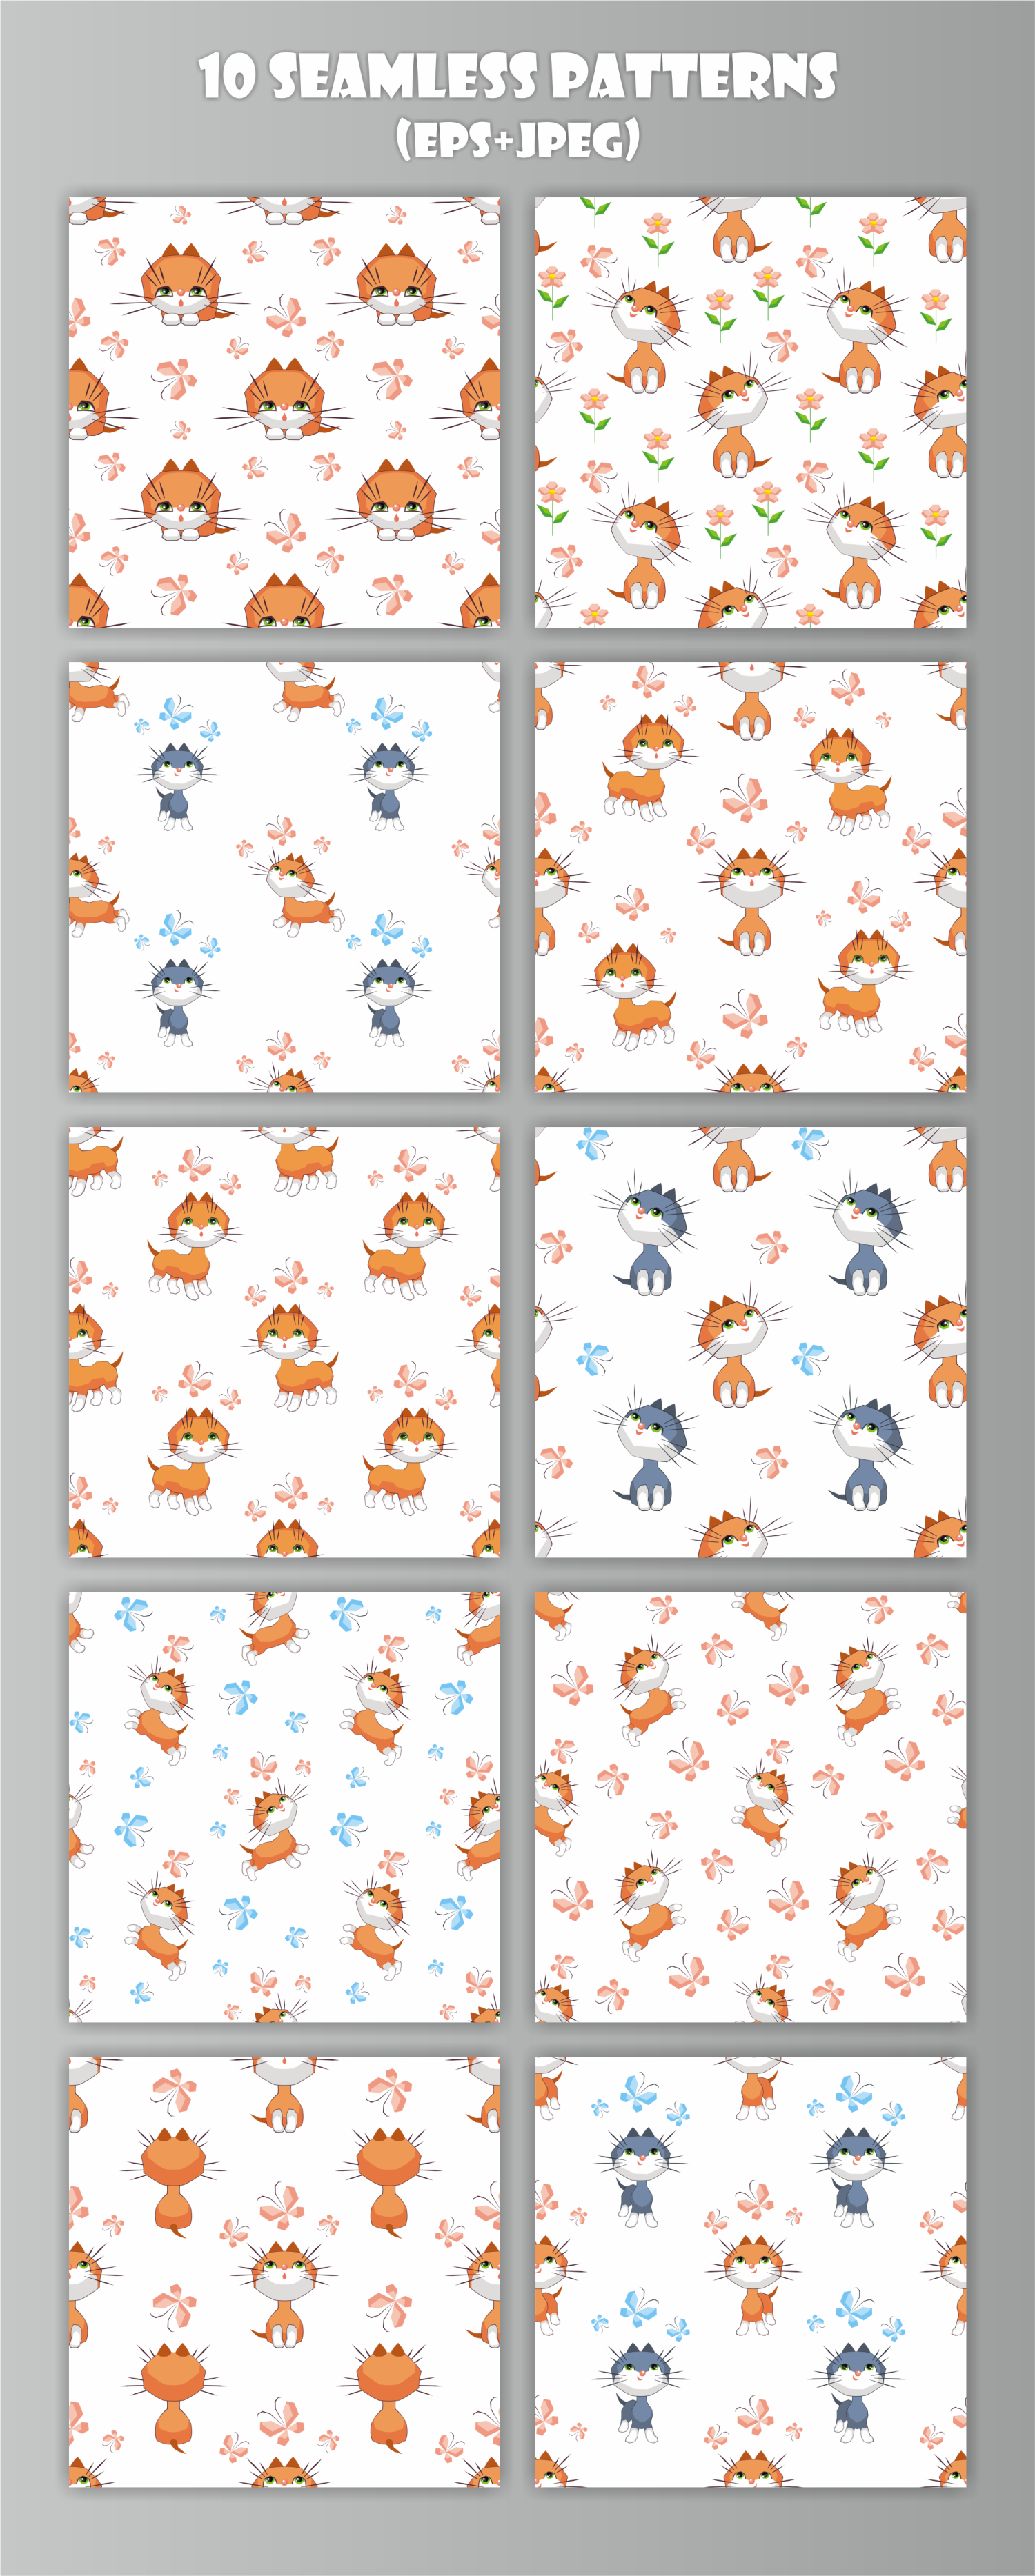 Little kittens. Seamless patterns example image 2